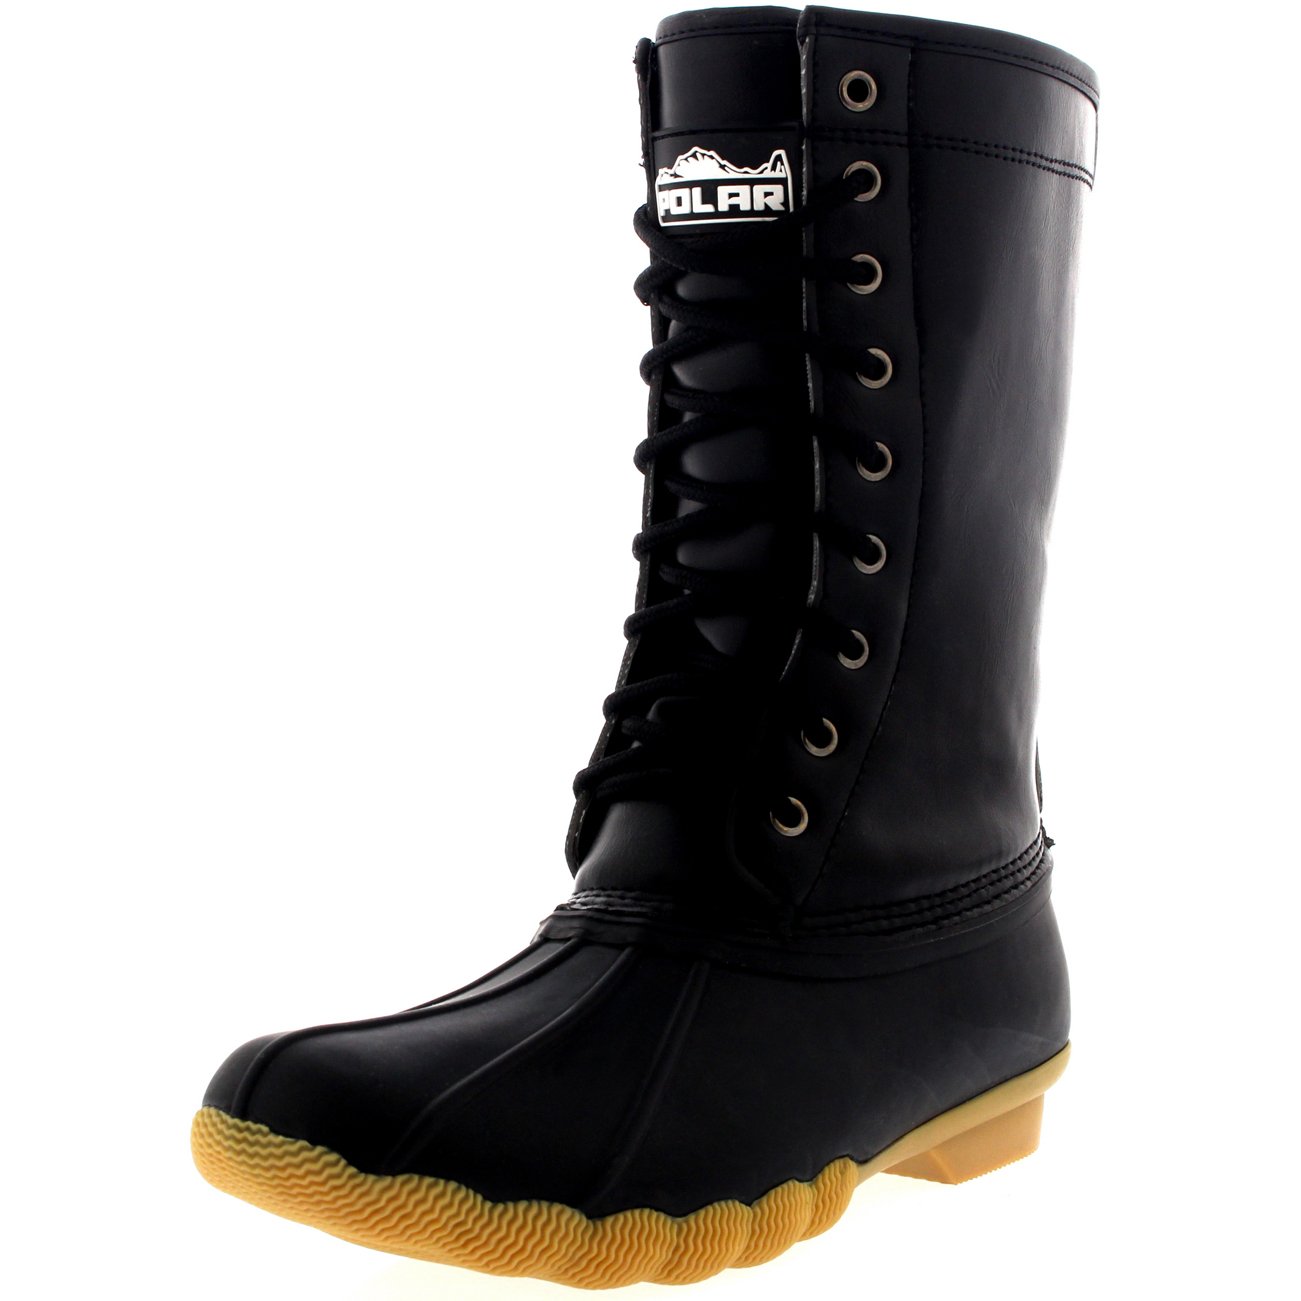 Perfect Clothing Shoes Accessories Gt Women39s Shoes Gt Boots